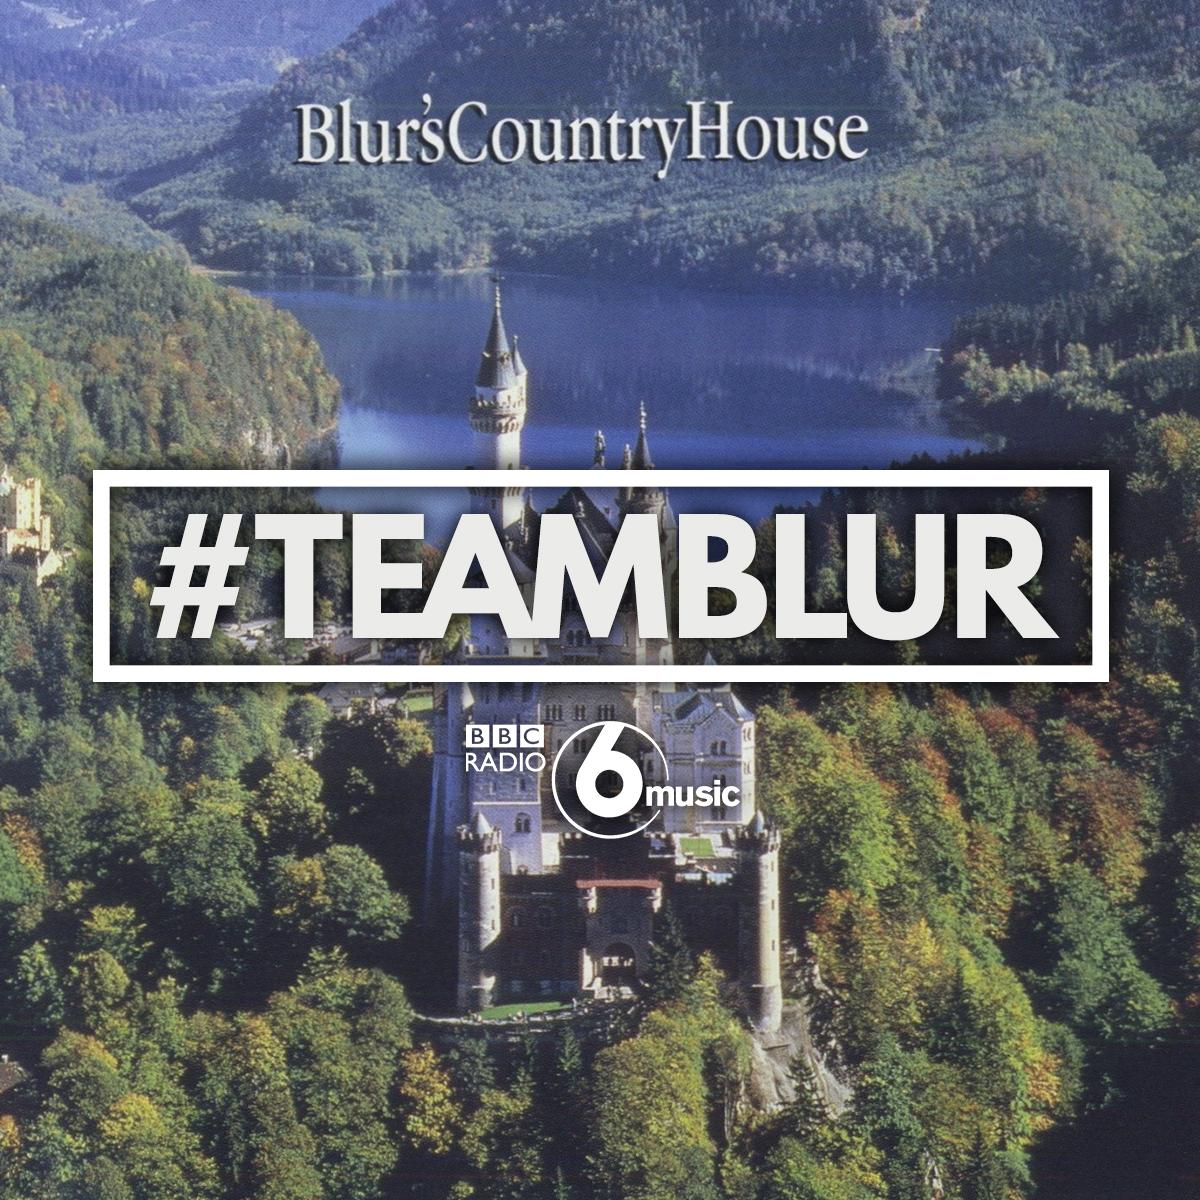 It's 20 yrs on from @blurofficial & @oasis' chart battle...   Retweet if you're #TeamBlur or fav if you're #TeamOasis http://t.co/rRPVFsj3Ov